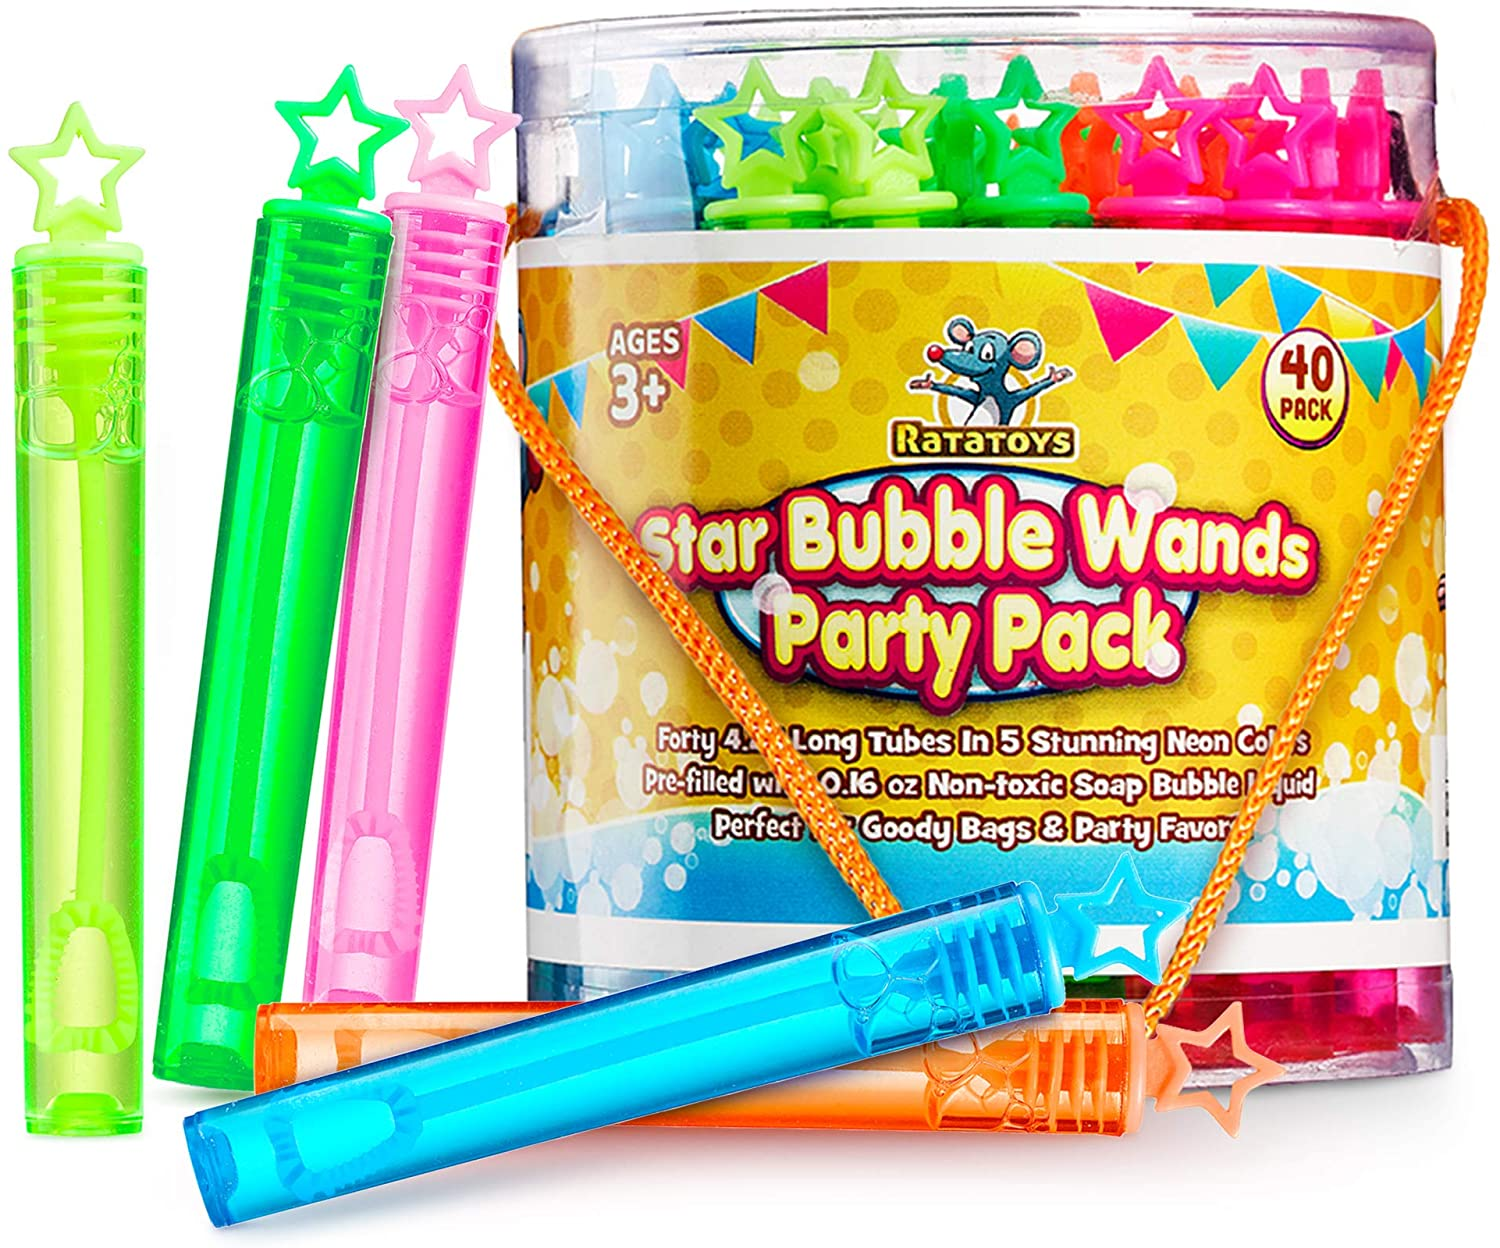 Star Bubble Wands Party Favors Pack Of 40 By Ratatoys: Fourty Mini Neon Bubble Wands | Odor-Free Non-Toxic Kids' Bath Toy/Birthday Treats Bubble Maker Toys for Kids | Outdoor Summer Events & Celebration Toy Gift